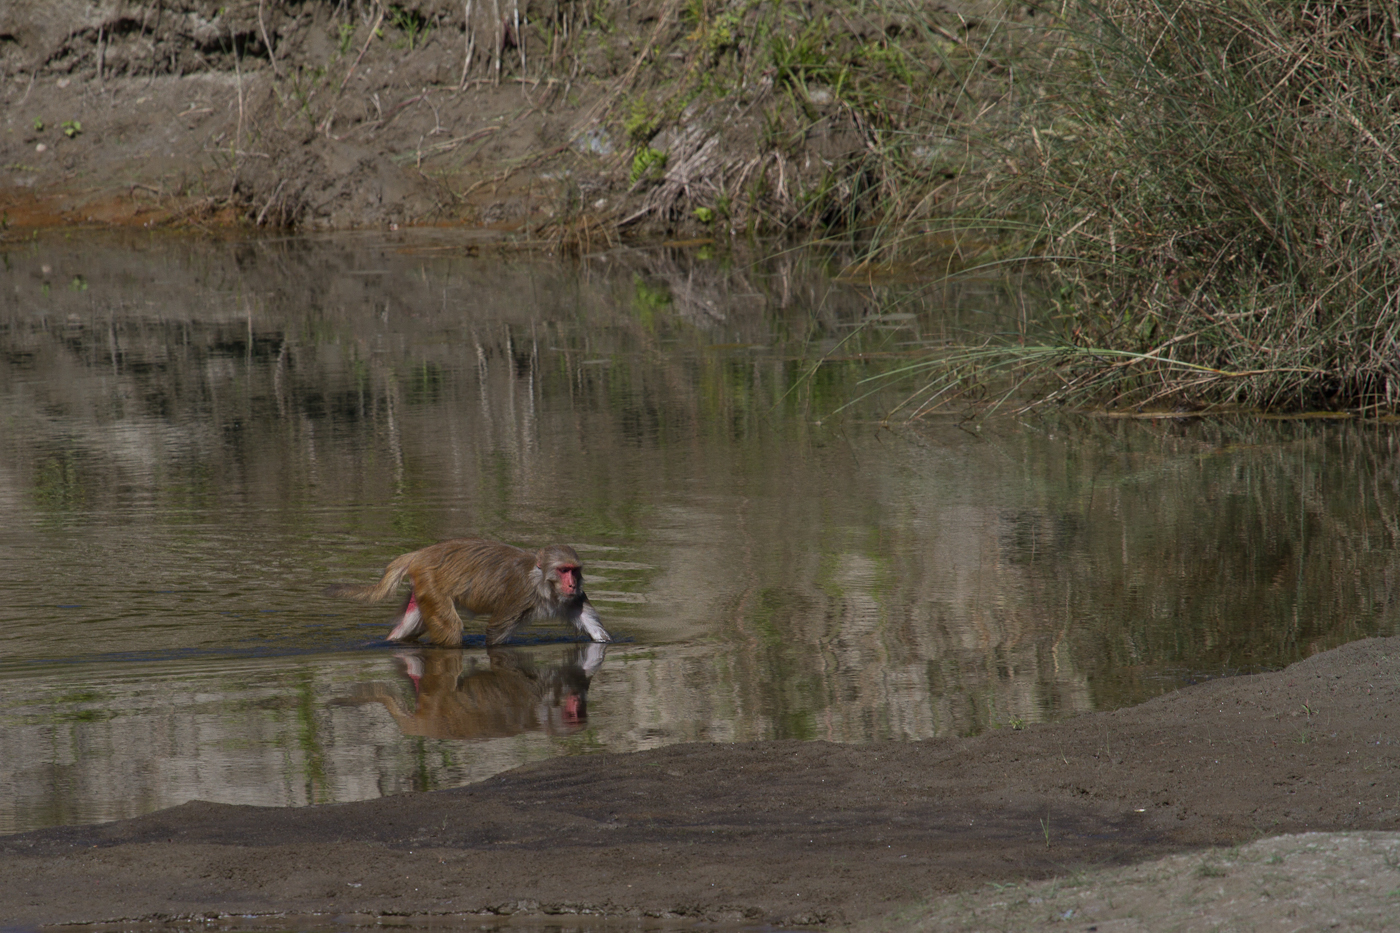 Rhesus Macaque crossing the river in Bardia National Park